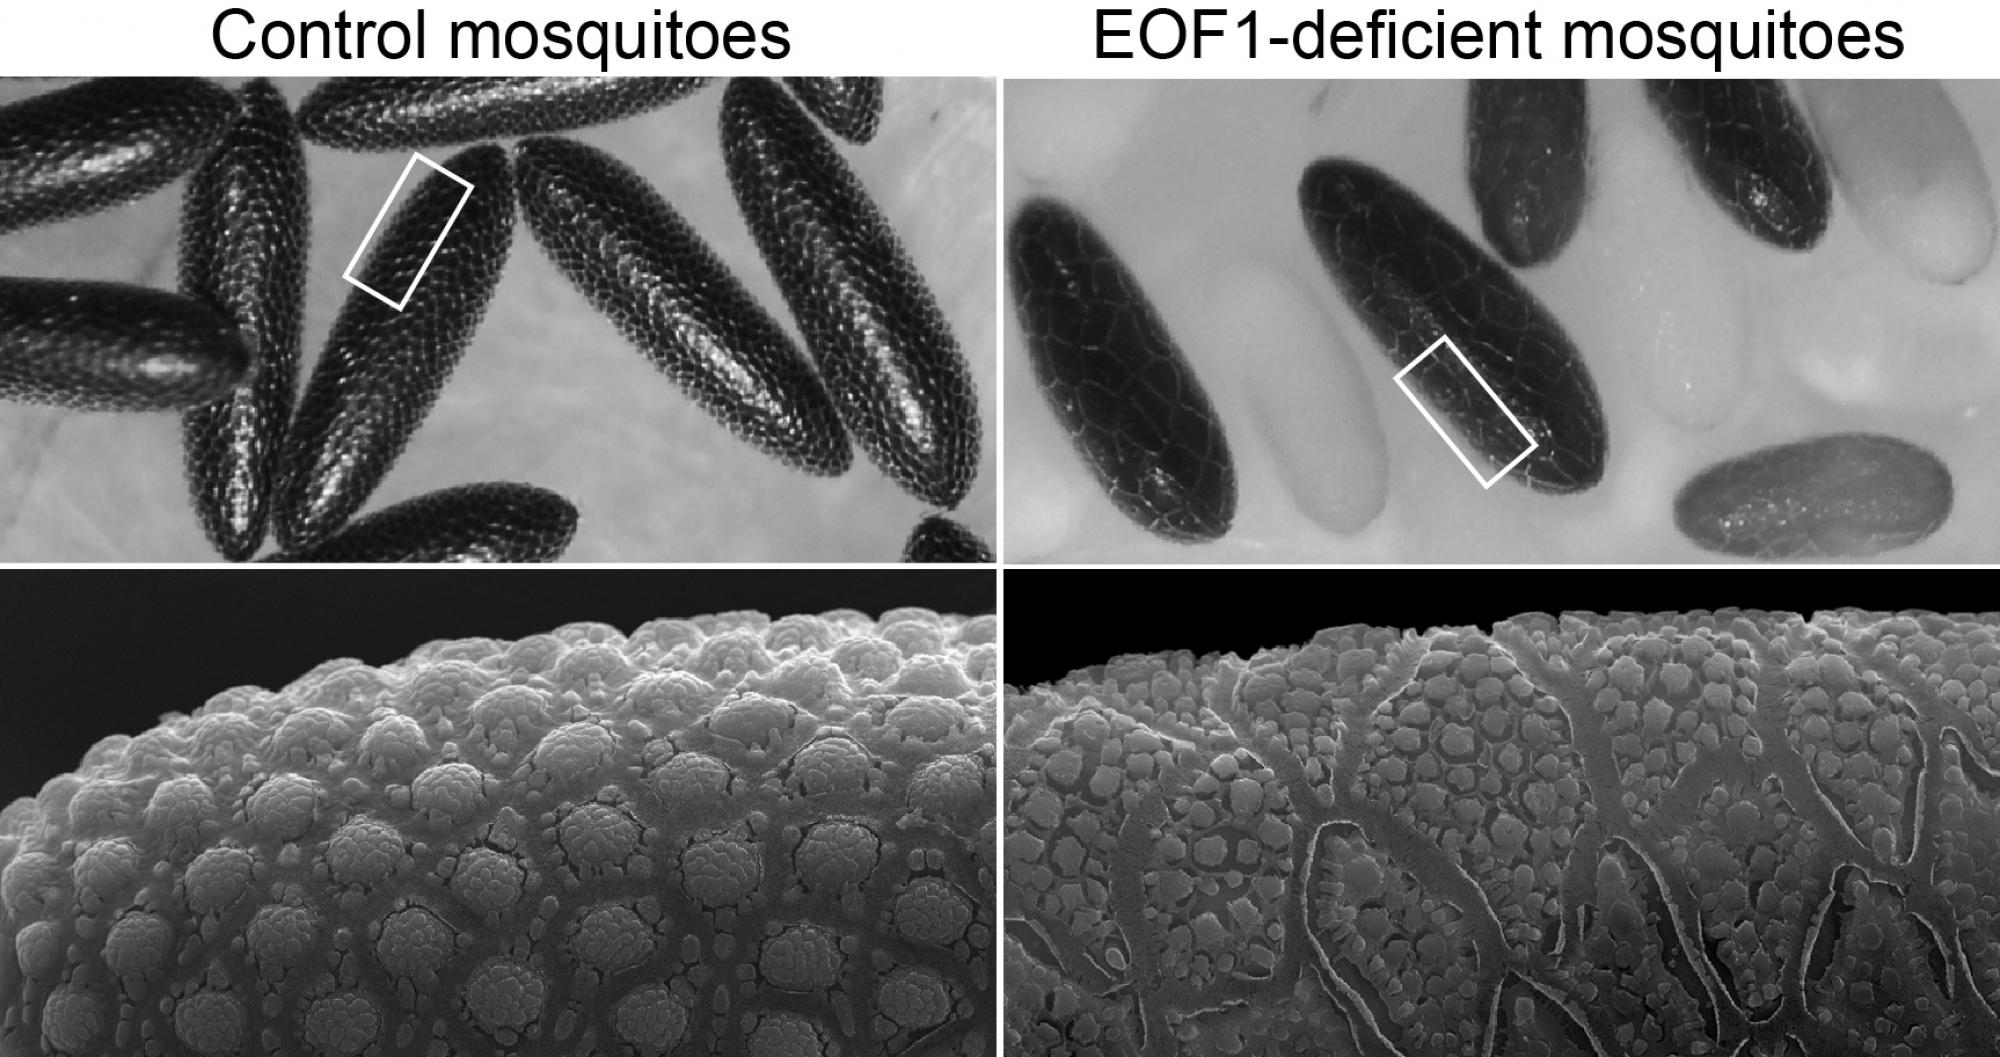 Eggs laid by mosquitoes treated with RNAi against the EOF-1 protein  and a control  display striking differences in their shells: Instead of a surface covered in regular bumps , EOF-1 deficient mosquitoes lay eggs in which this regular structure is disrup